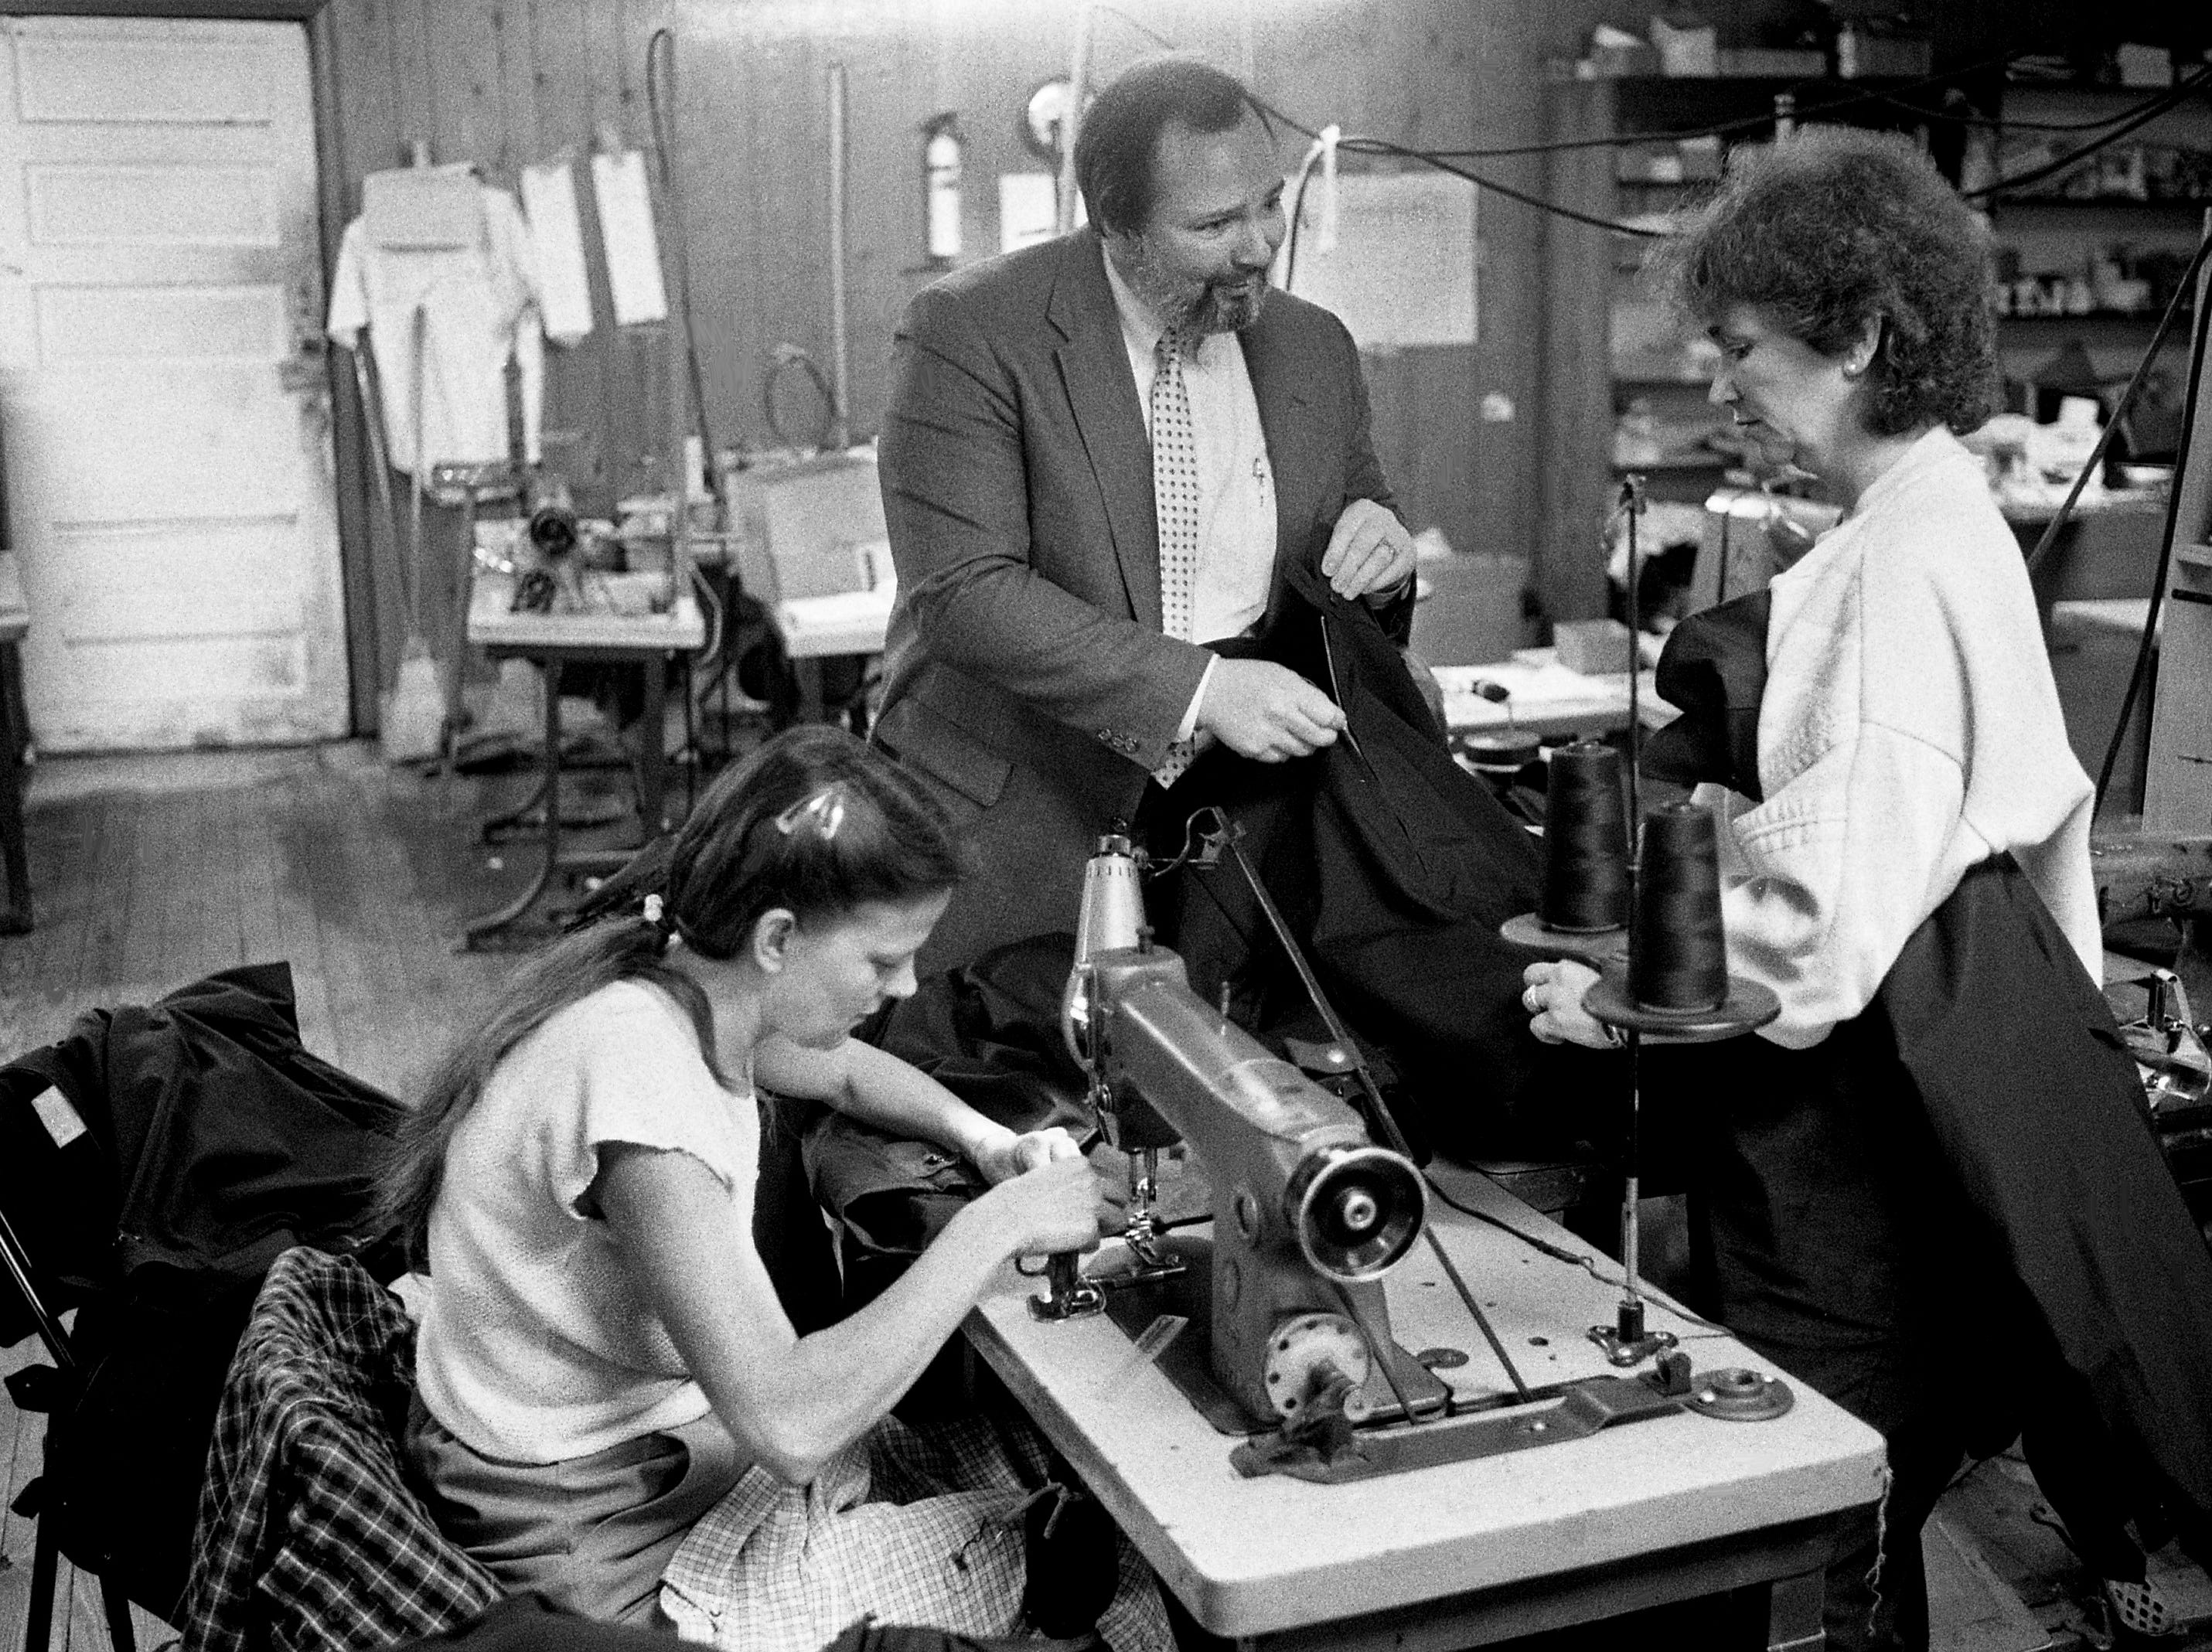 Louie Johnson, center, president of Custom Creations of Nashville, and Joanne Green, right, examine a zipper on a uniform jacket for the Navy as Susie O'Neal works on her machine at the company's plant in Westmoreland, Tenn., on Feb. 3, 1989.